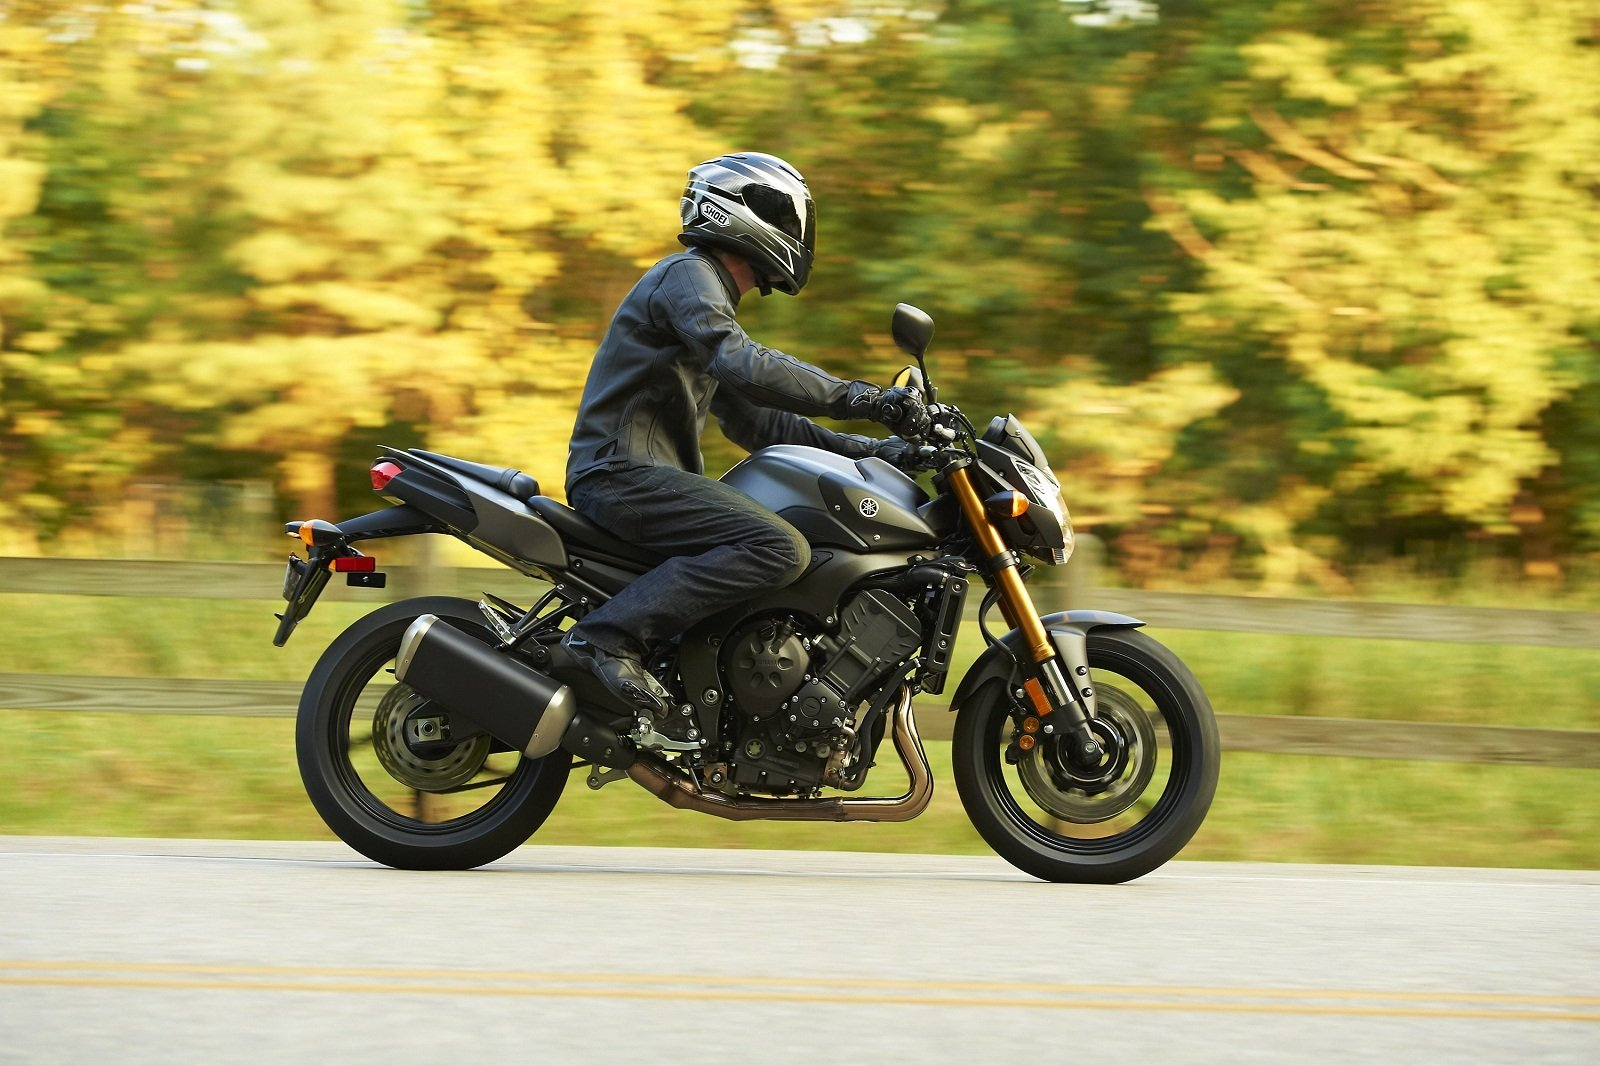 2012 yamaha fz8 picture 418949 motorcycle review top speed. Black Bedroom Furniture Sets. Home Design Ideas